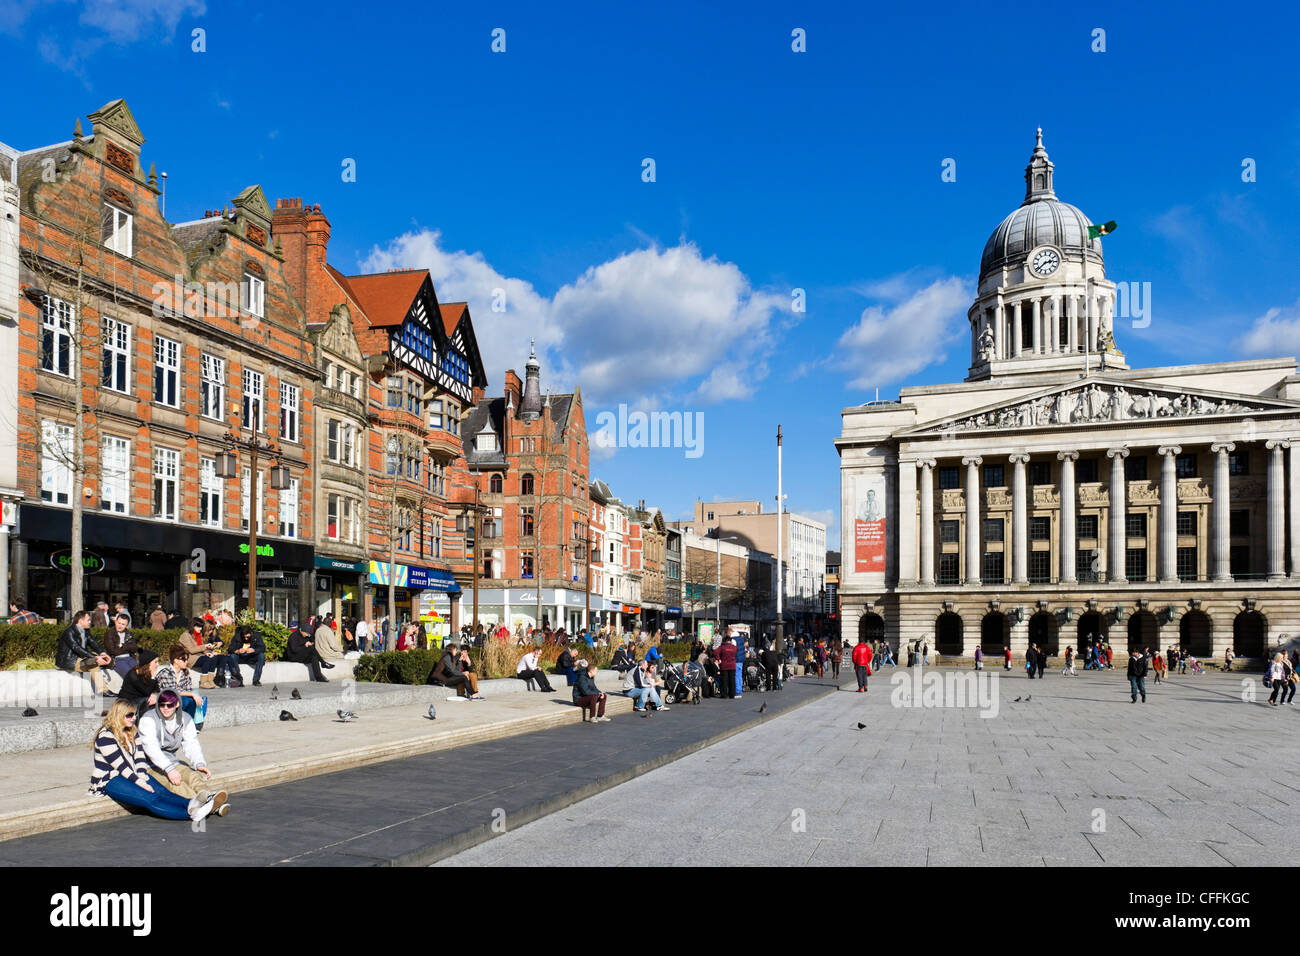 Shops on Old Market Square with the Council House (city hall) to the right, Nottingham, Nottinghamshire, England, - Stock Image